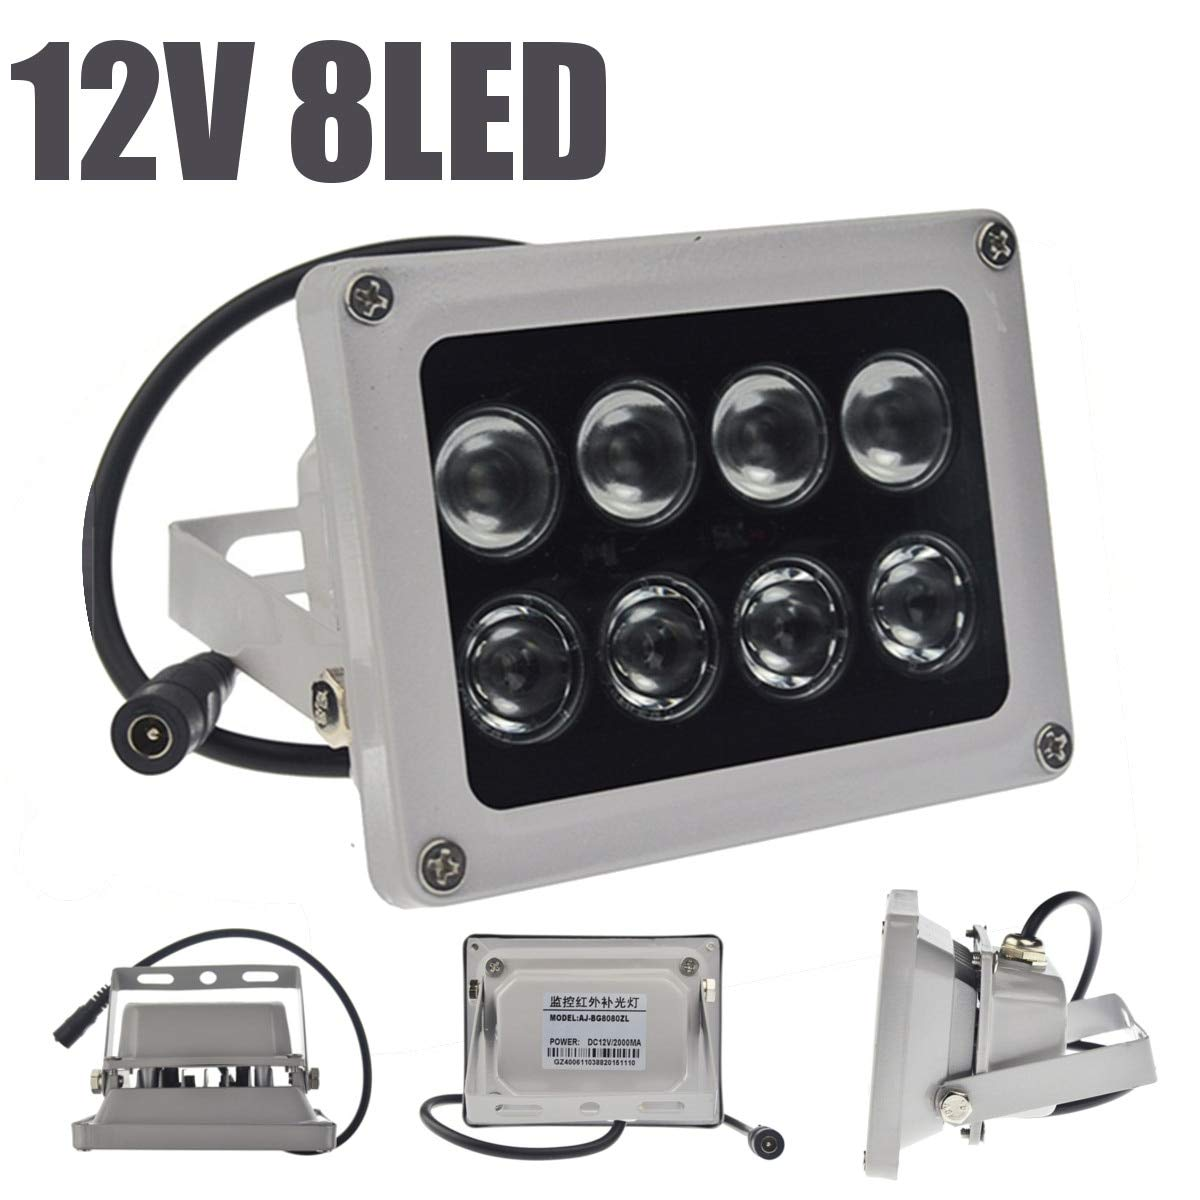 DELAMZ - Infrared Light Lamp 8 LEDs IR Night Vision Wide Angle IP65 Waterproof Fill Light for CCTV Securiy Accessories by DELAMZ